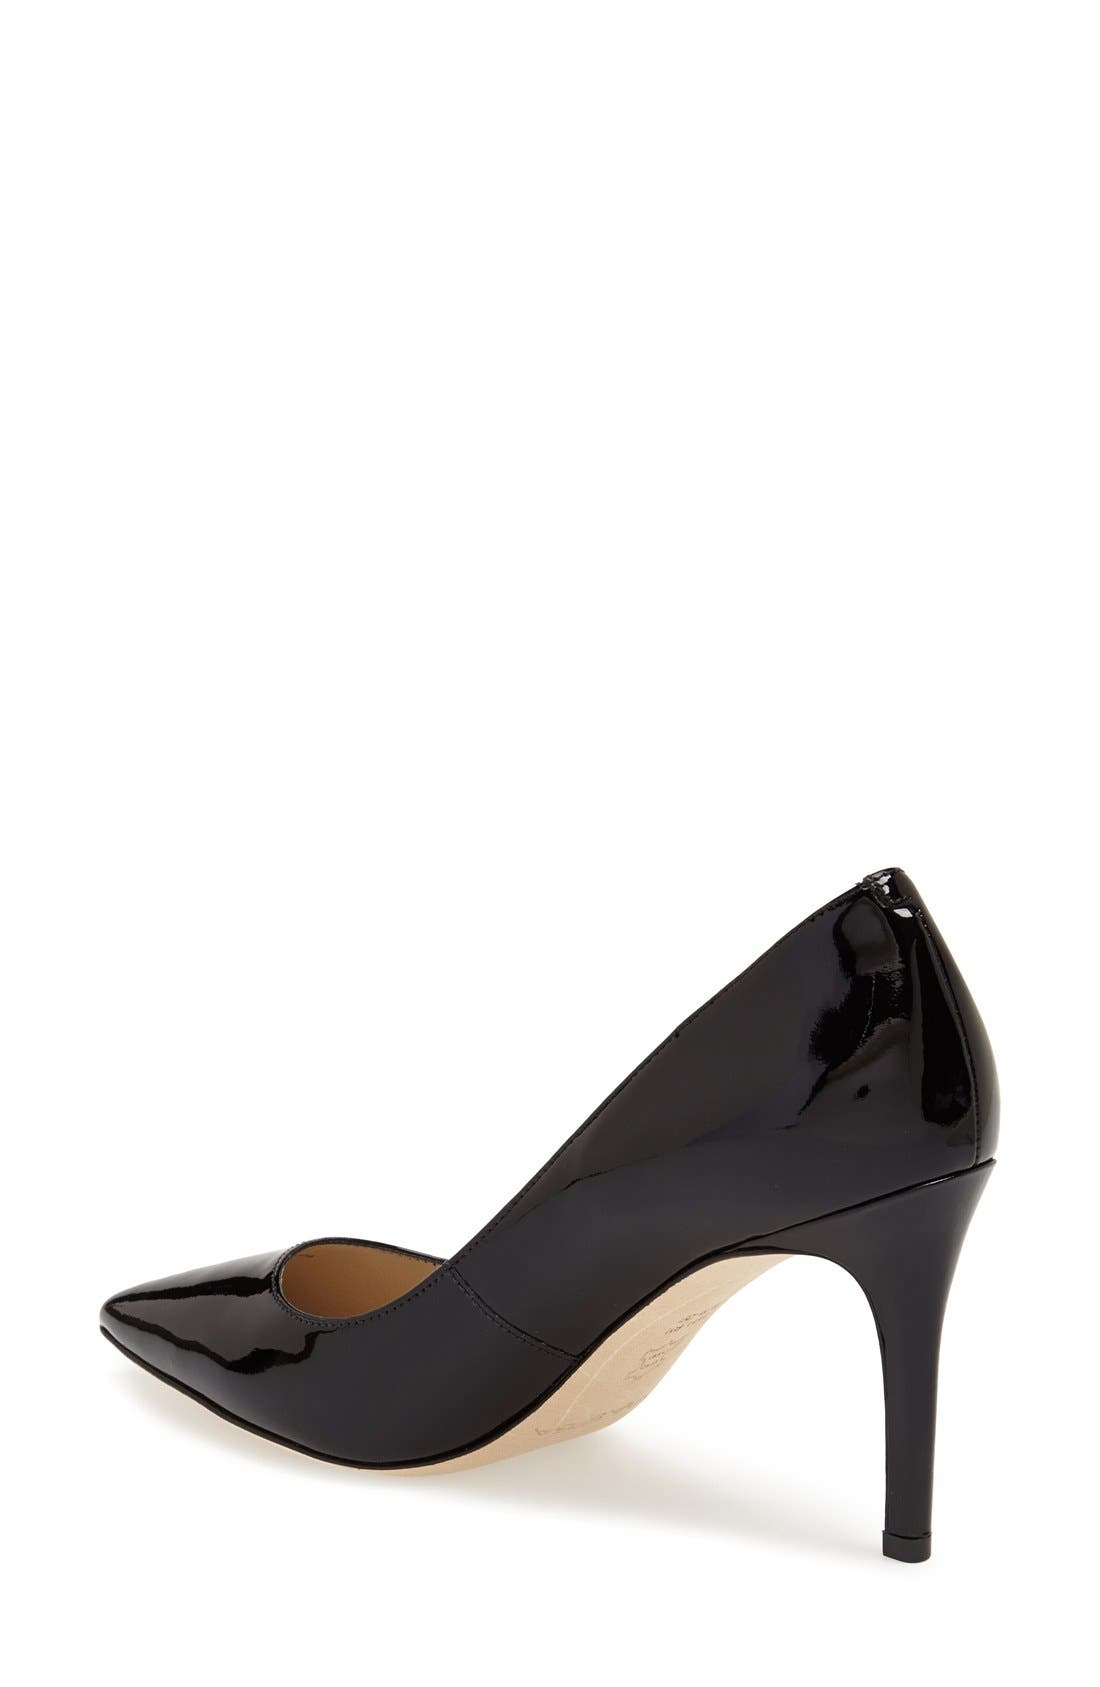 'Carola' Pointy Toe Pump,                             Alternate thumbnail 2, color,                             001